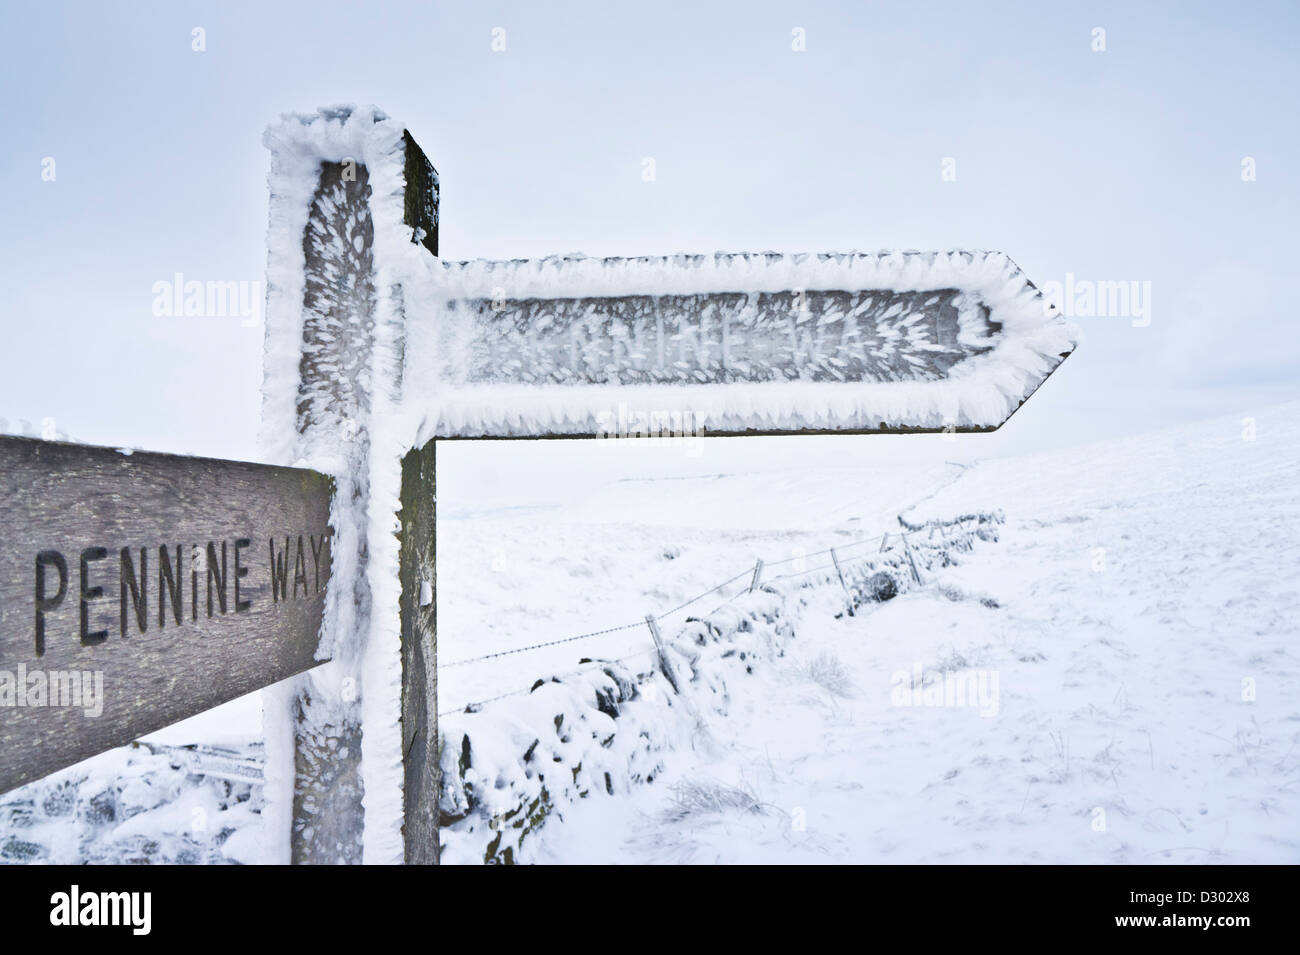 snow and ice covered signpost giving directions to the pennine way Edale cross Kinder scout Derbyshire peak district - Stock Image